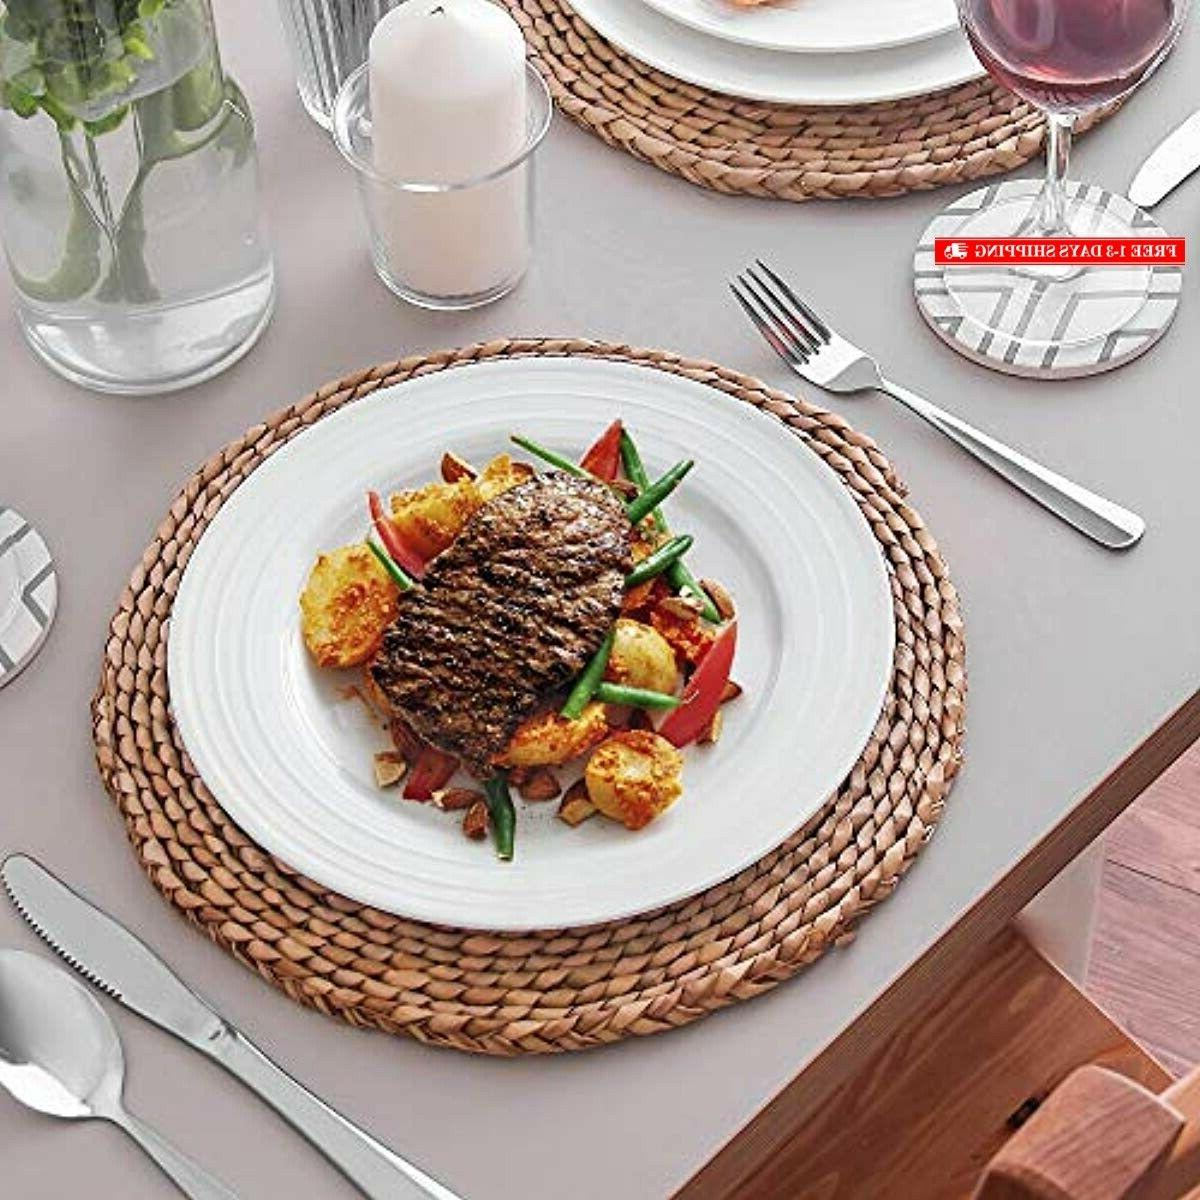 Lifver 10131 Dinner Plates/Serving Platters with E